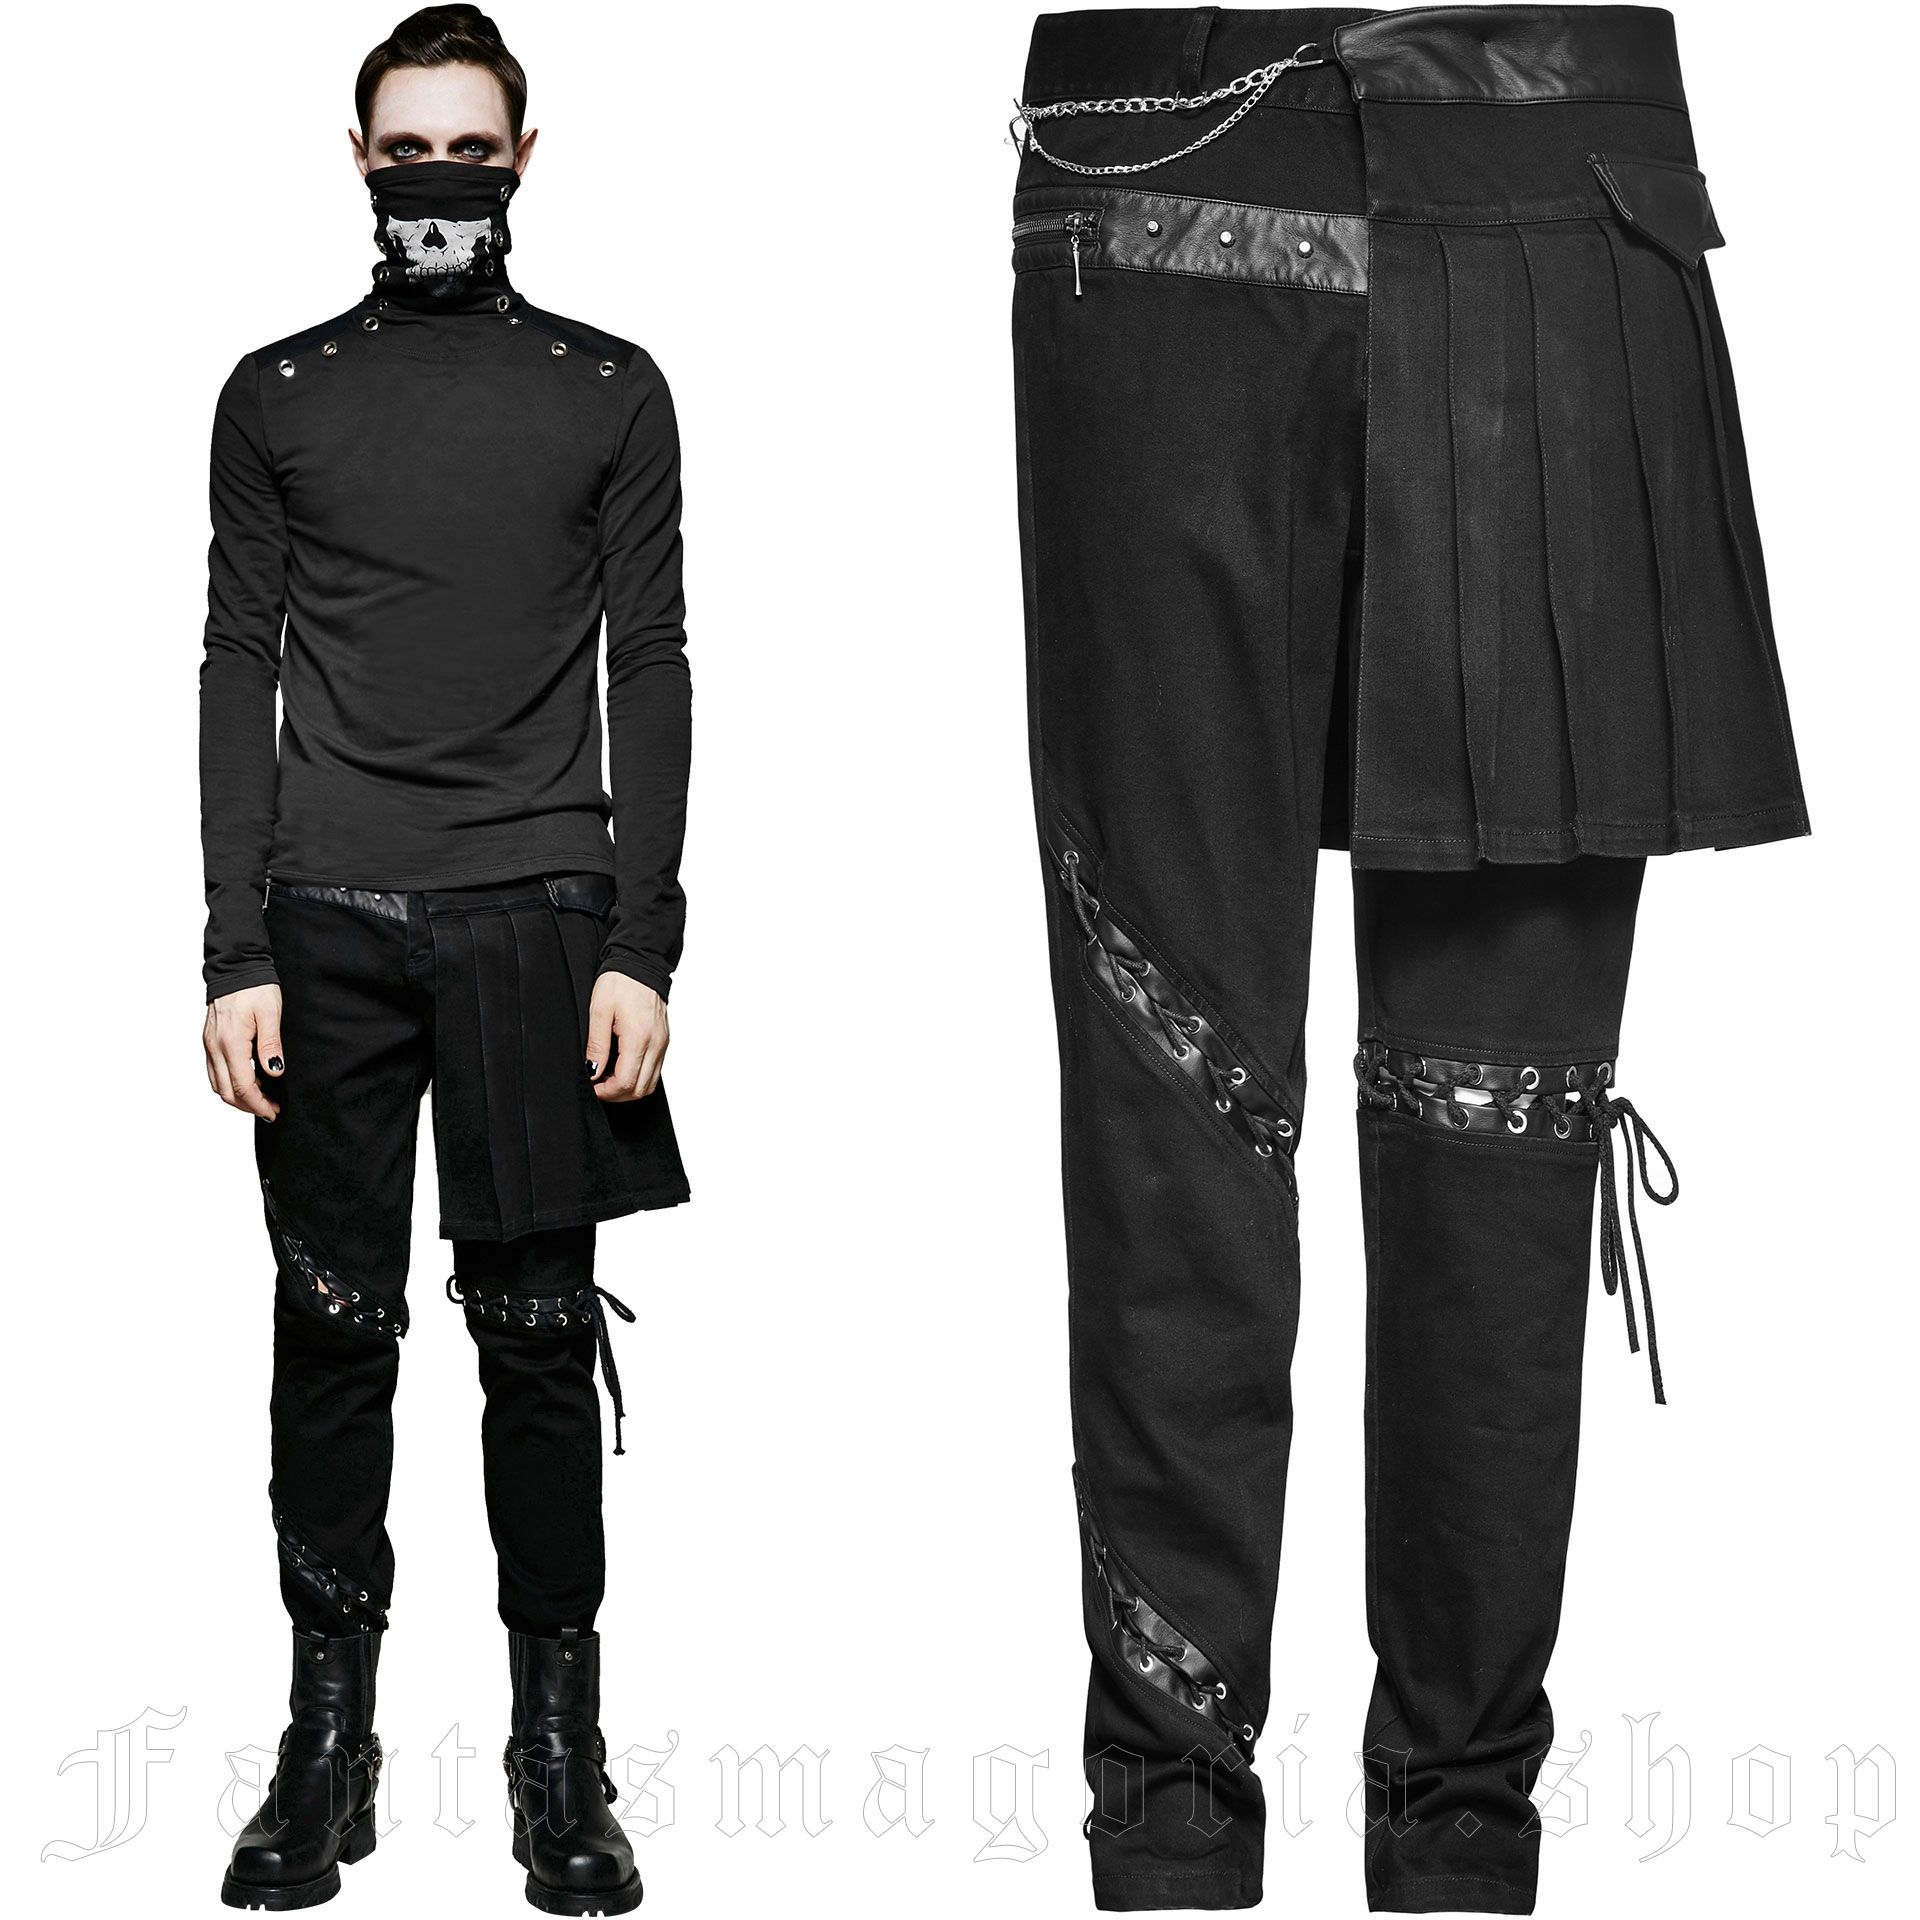 men's Catacomb Trousers by PUNK RAVE brand, code: K-255/Male